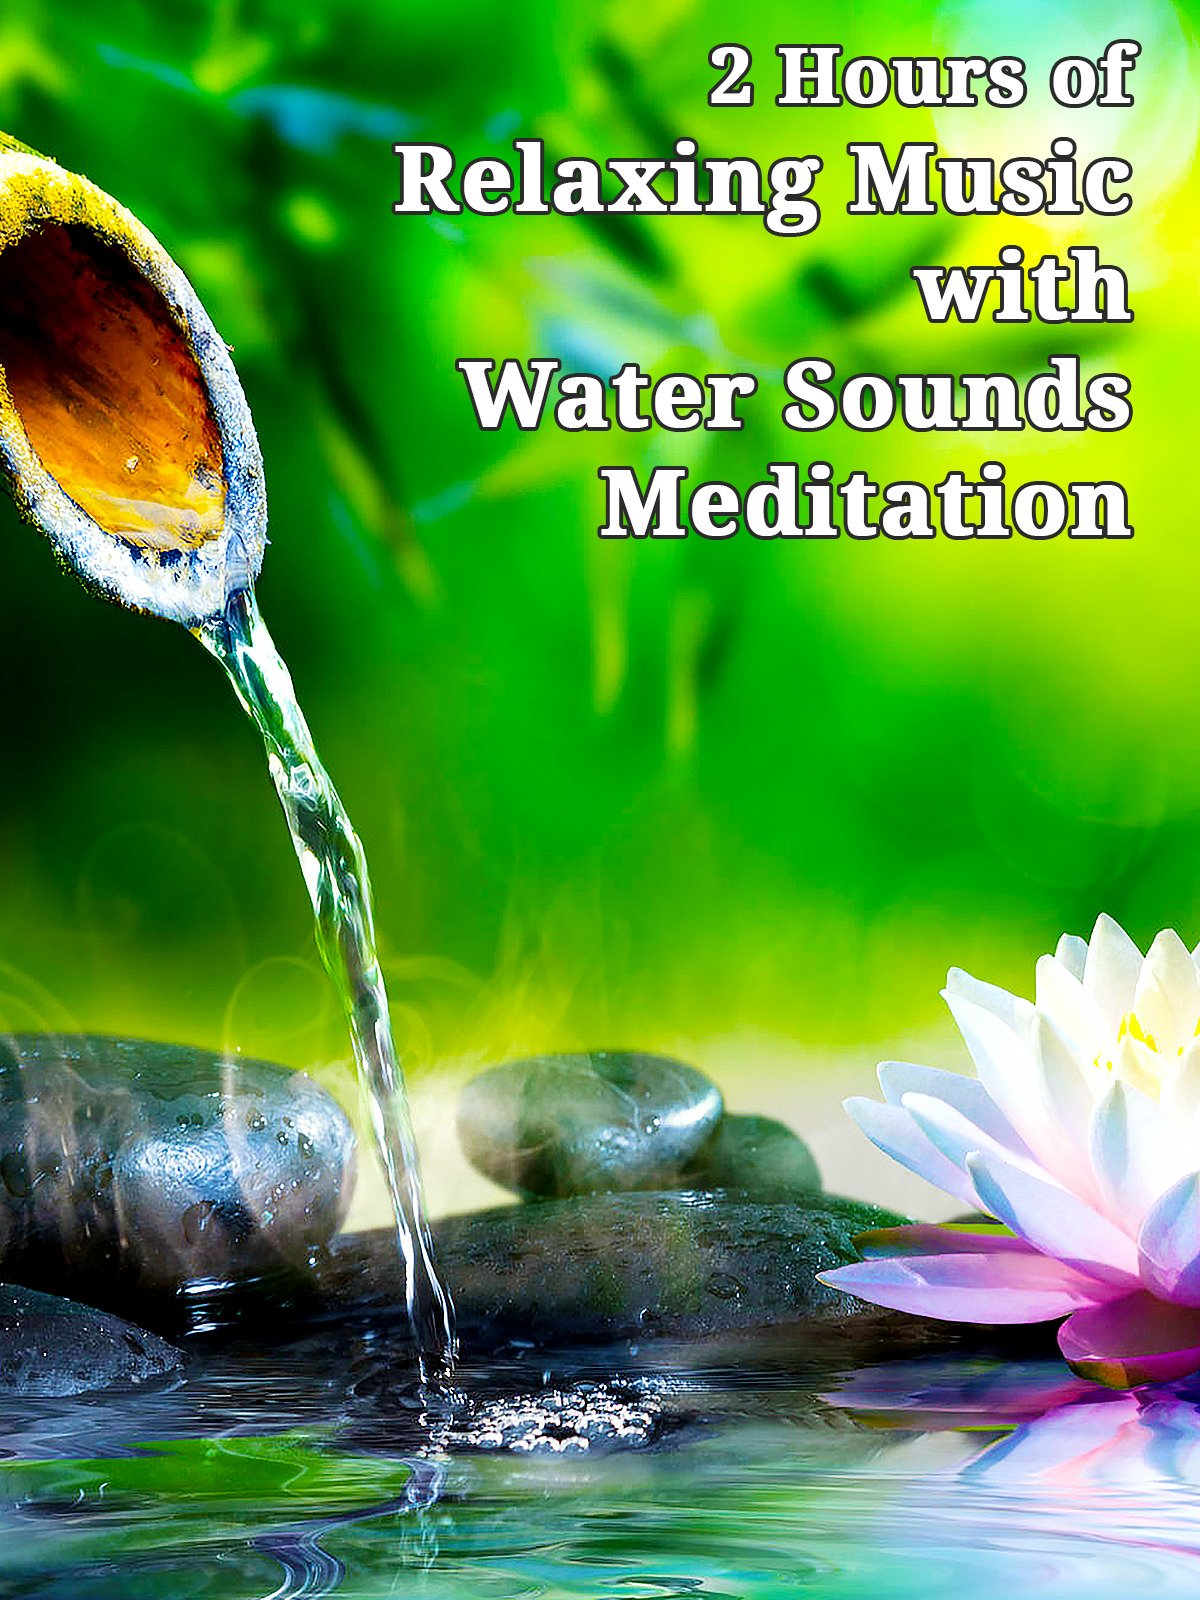 2 Hours of Relaxing Music with Water Sounds Meditation